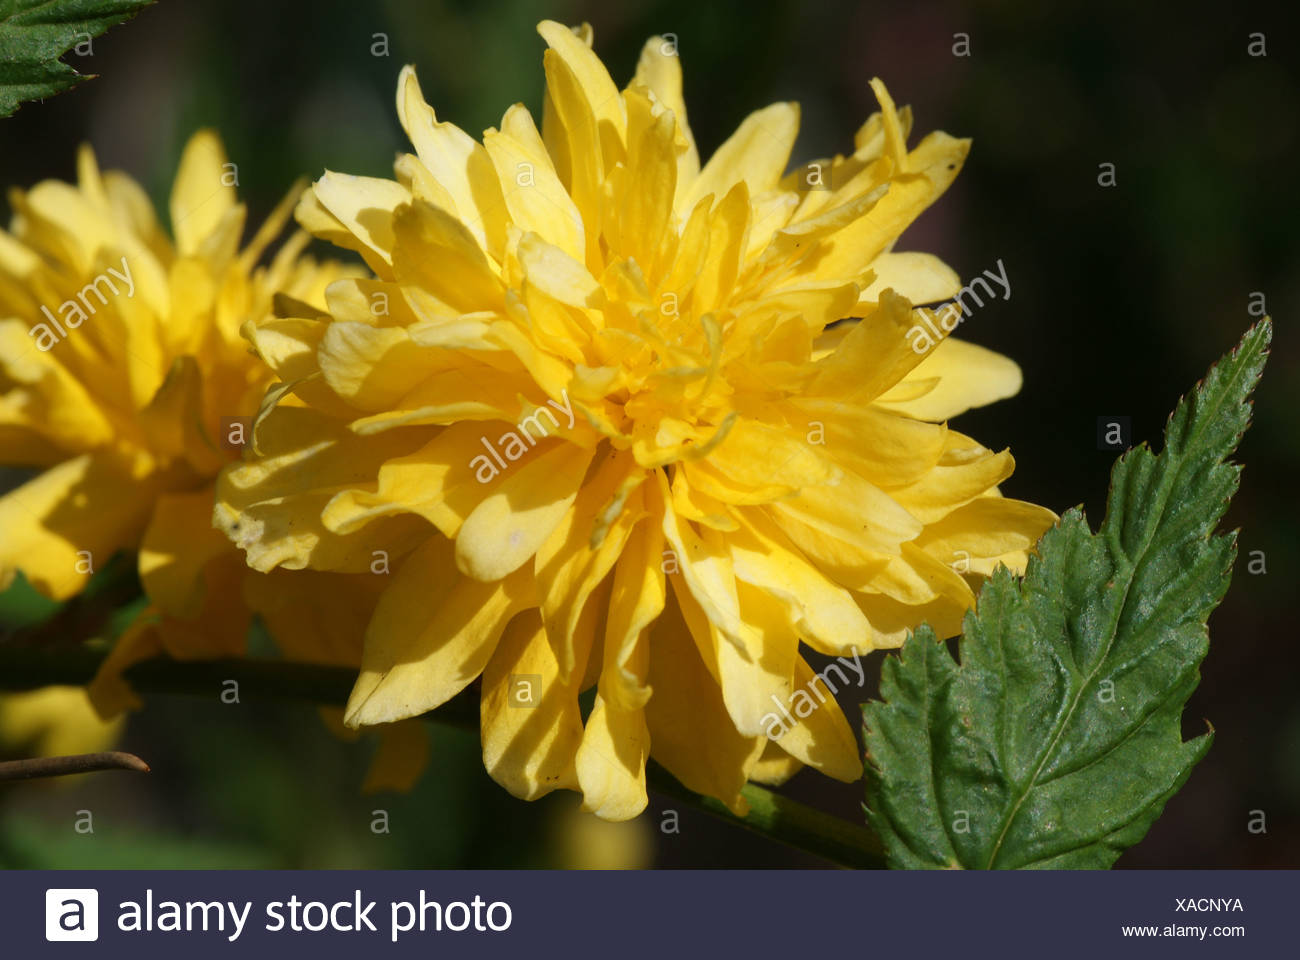 Ranunculus Stock Photo